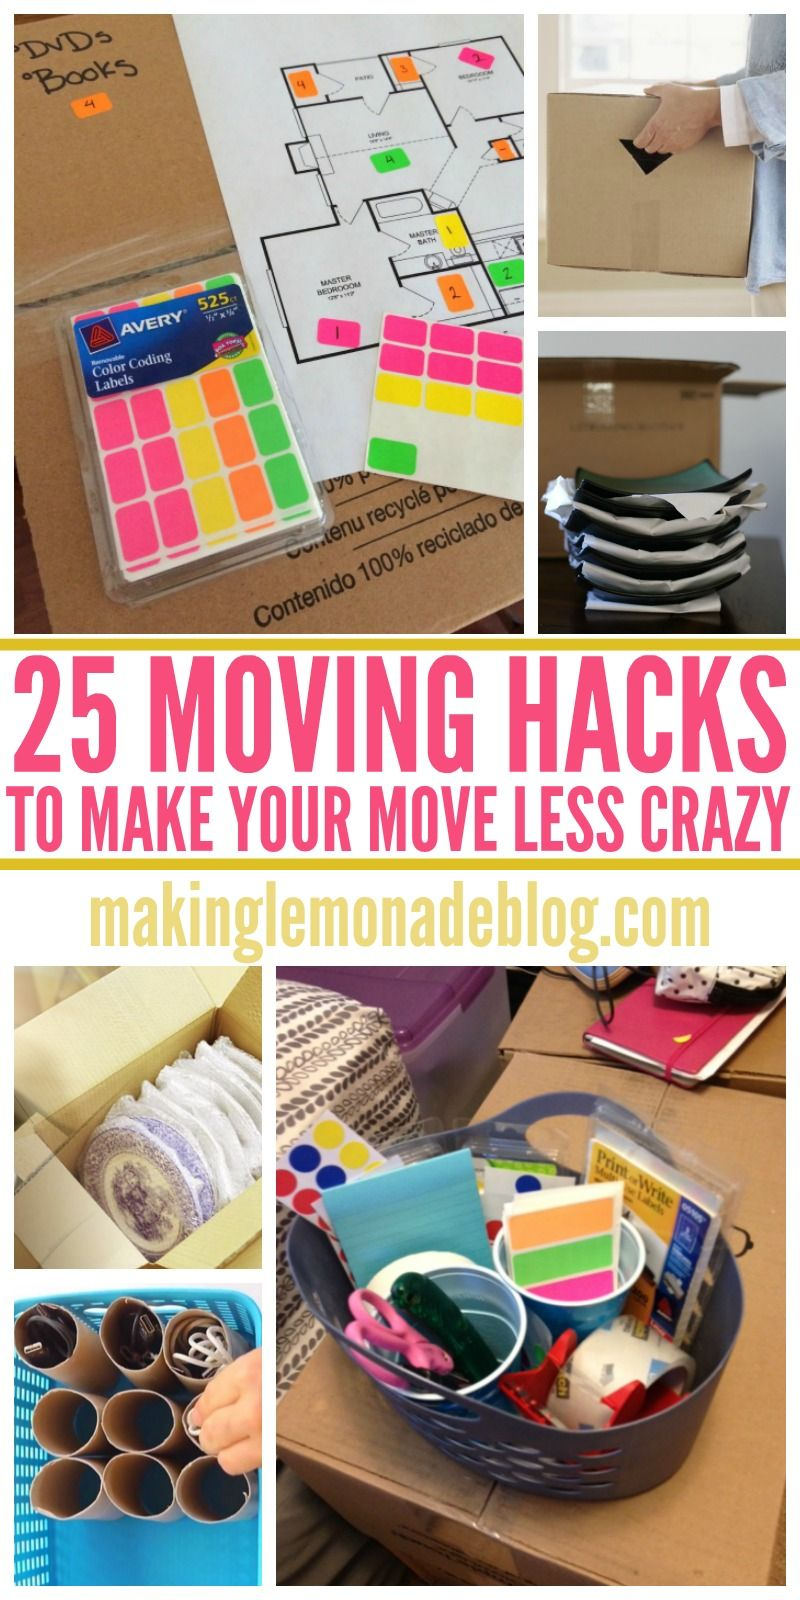 25 Clever Moving Hacks To Make Your Move Easier With Images